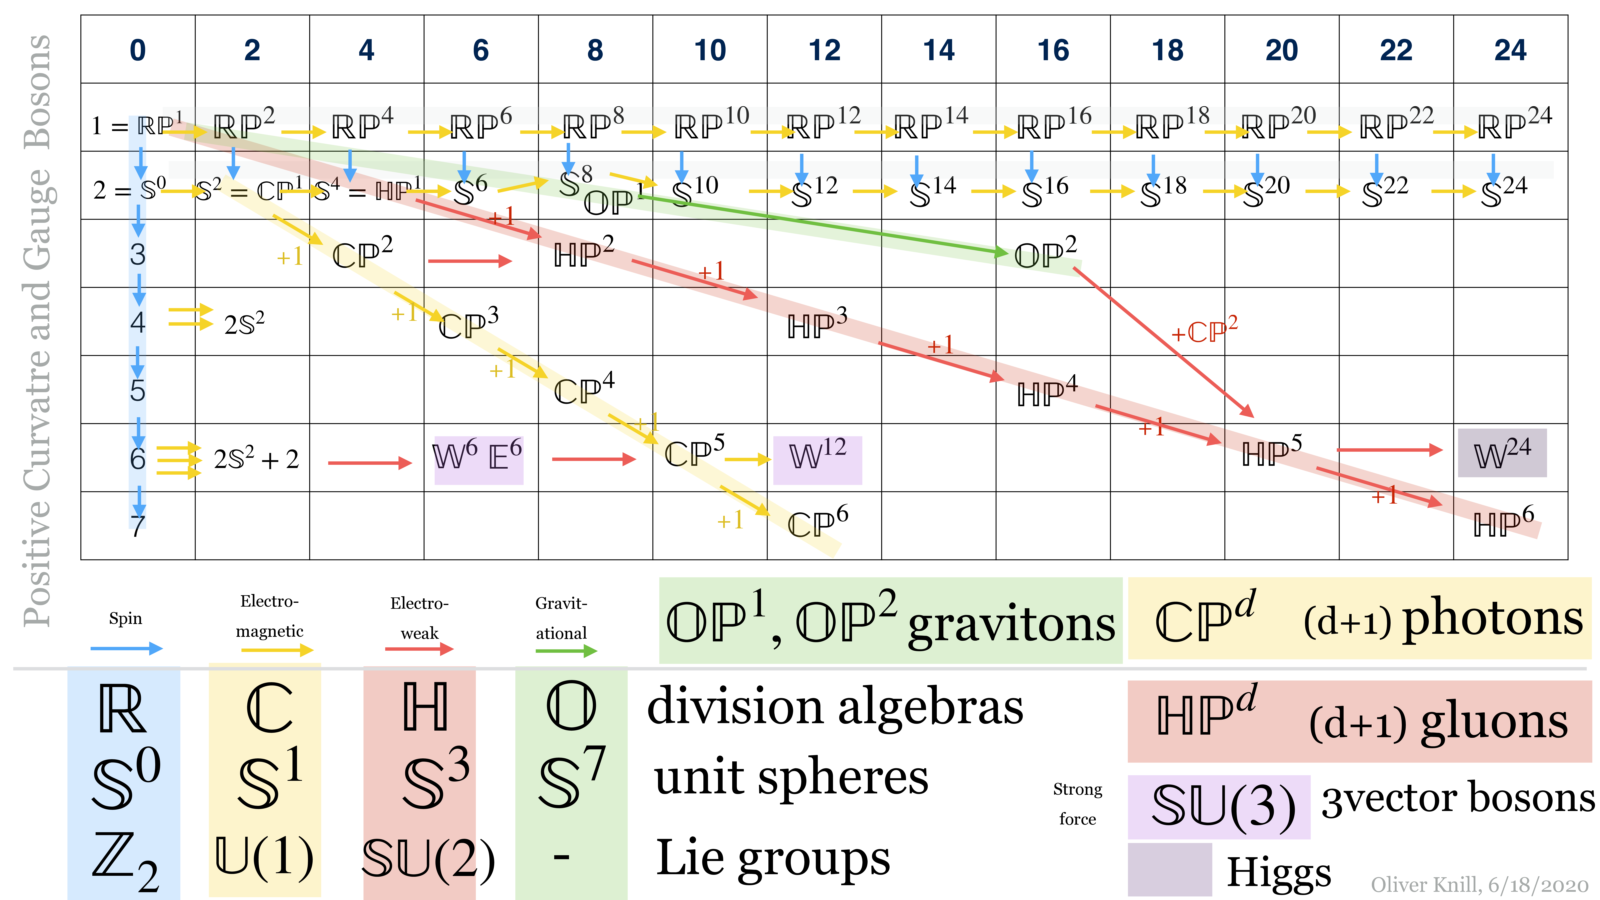 Periodic system of elements for positive curvature manifolds and and affinity to gauge bosons in physics